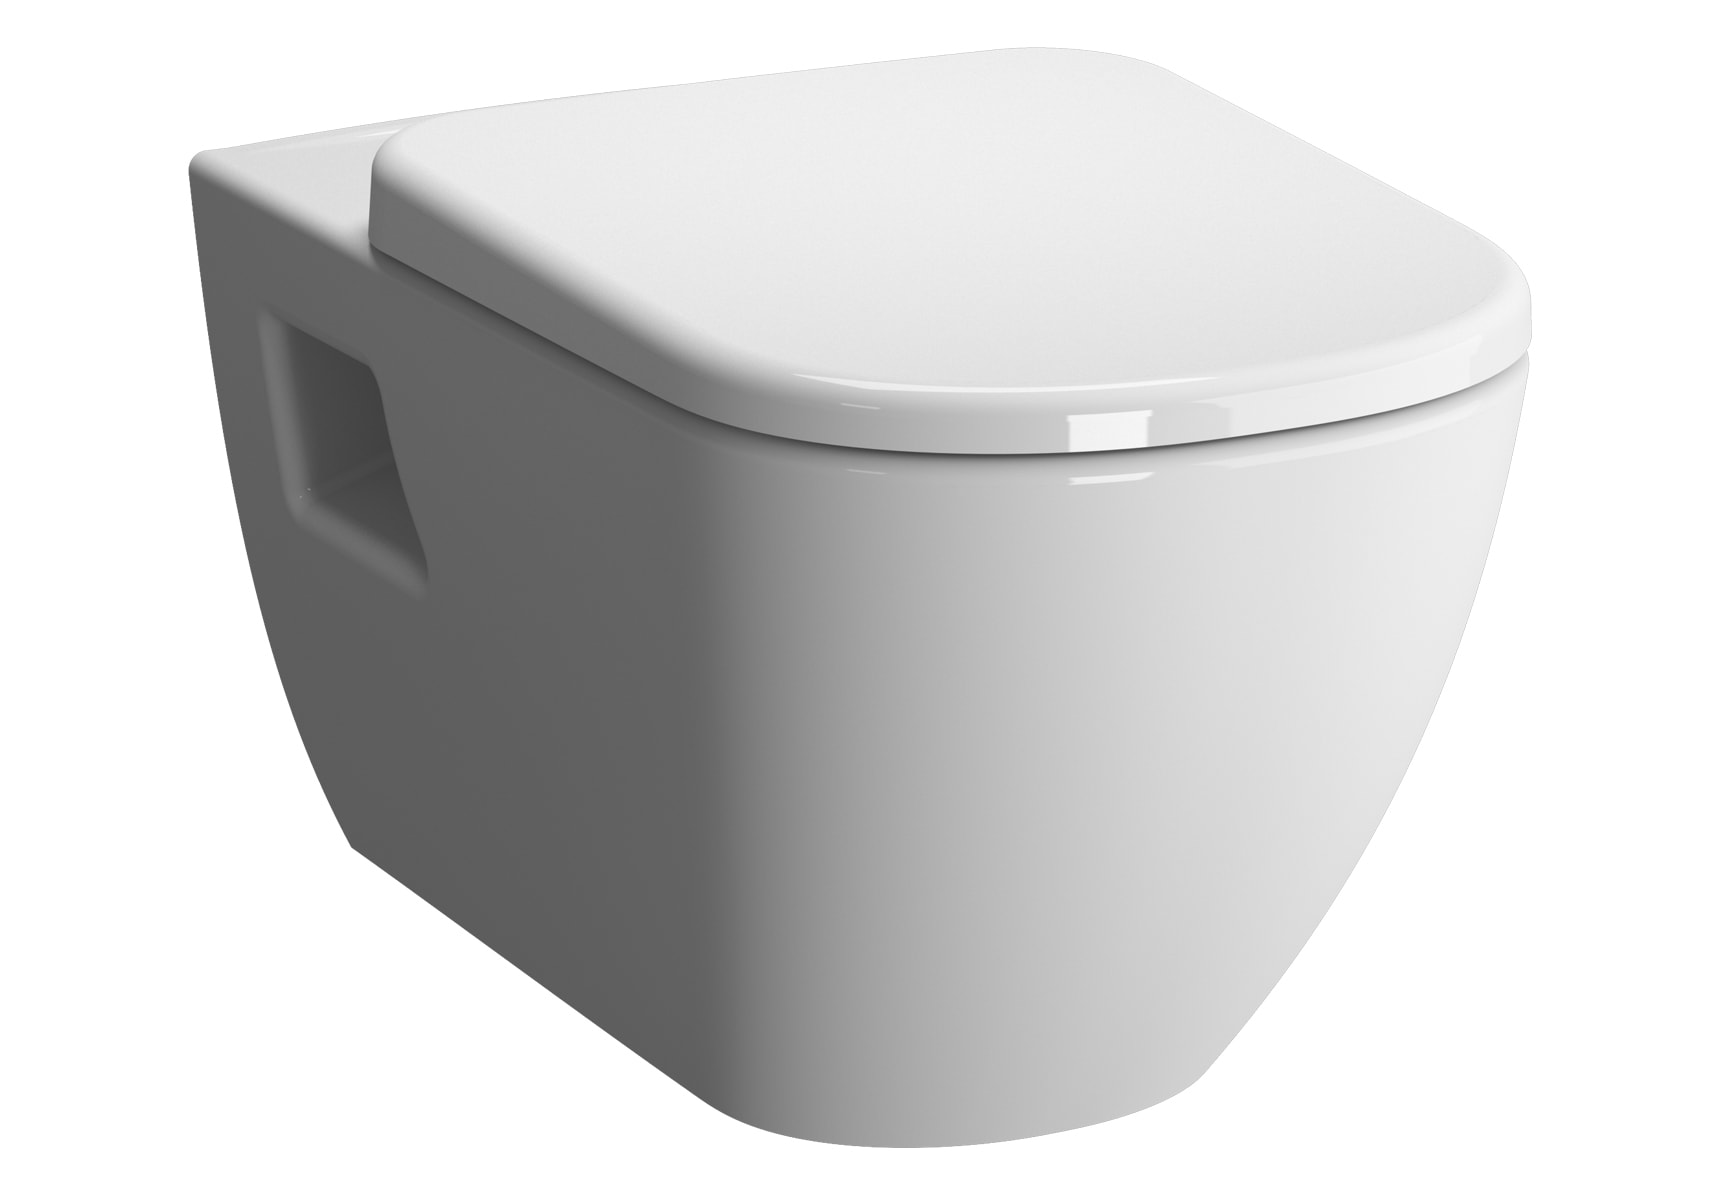 D-Light Rim-Ex Wall-Hung WC Pan Lid (without Bidet Pipe)